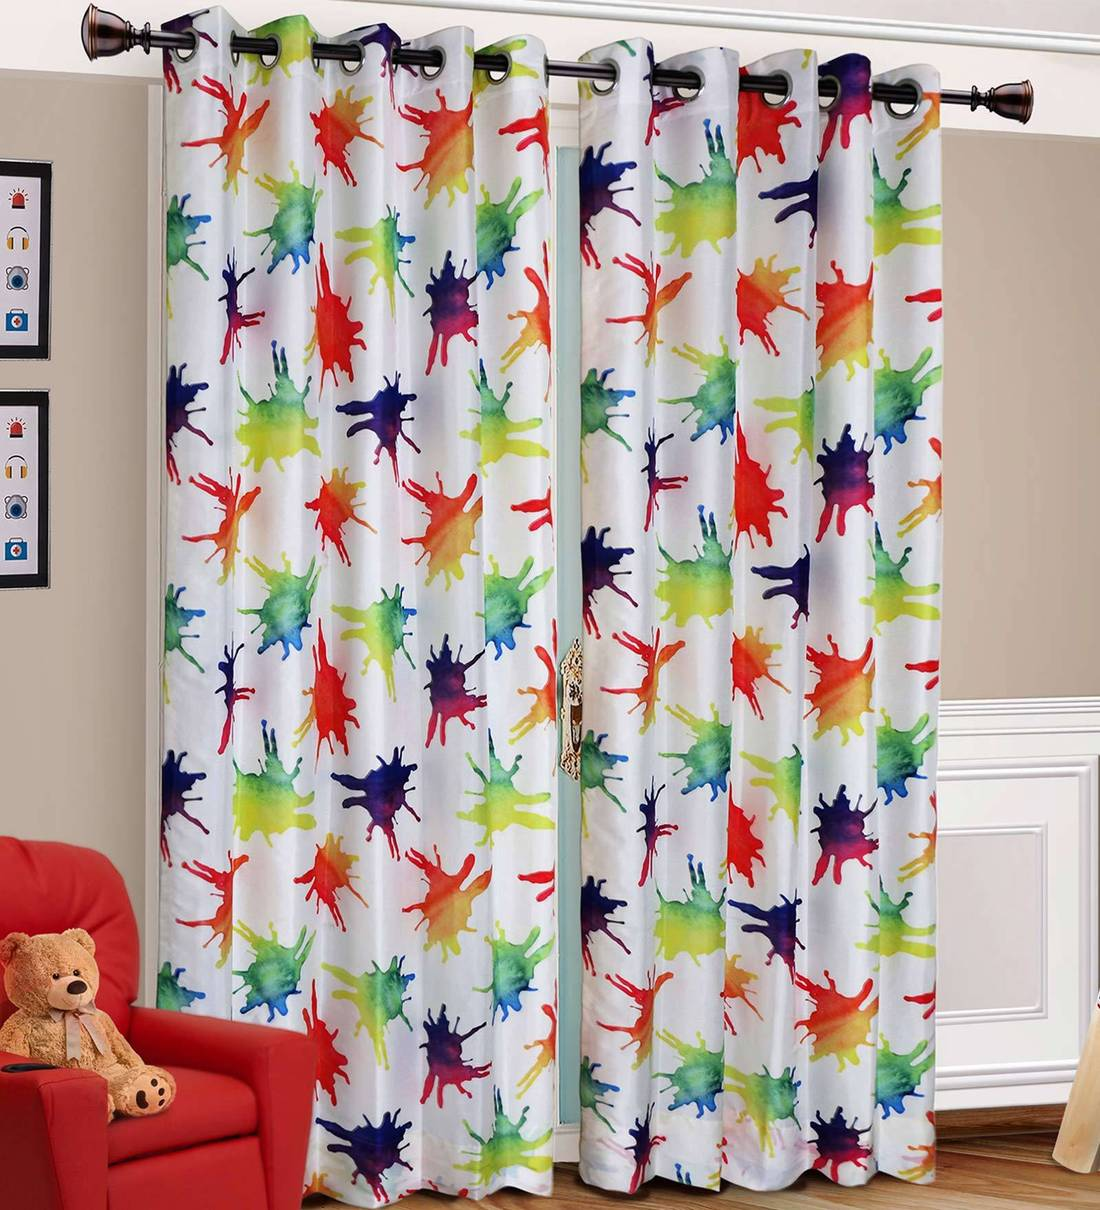 Buy Polyester 7 Feet Kids Door Curtain By Urban Hues Online Kids Curtains Kids Curtains Kids Furniture Pepperfry Product